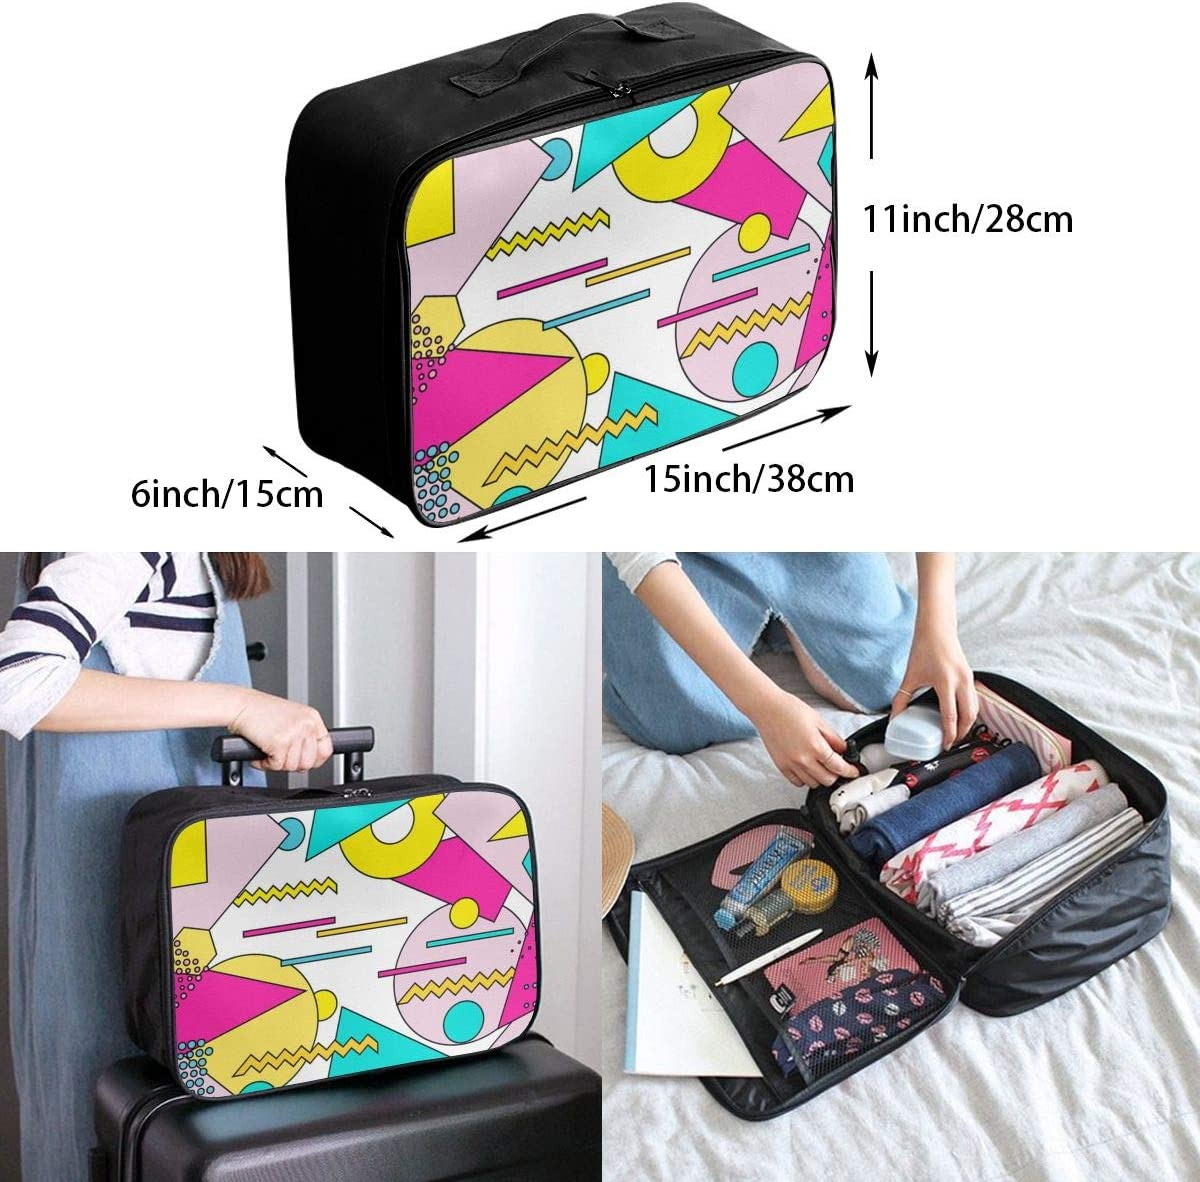 Yunshm Geometric Objects Customized Trolley Handbag Waterproof Unisex Large Capacity For Business Travel Storage